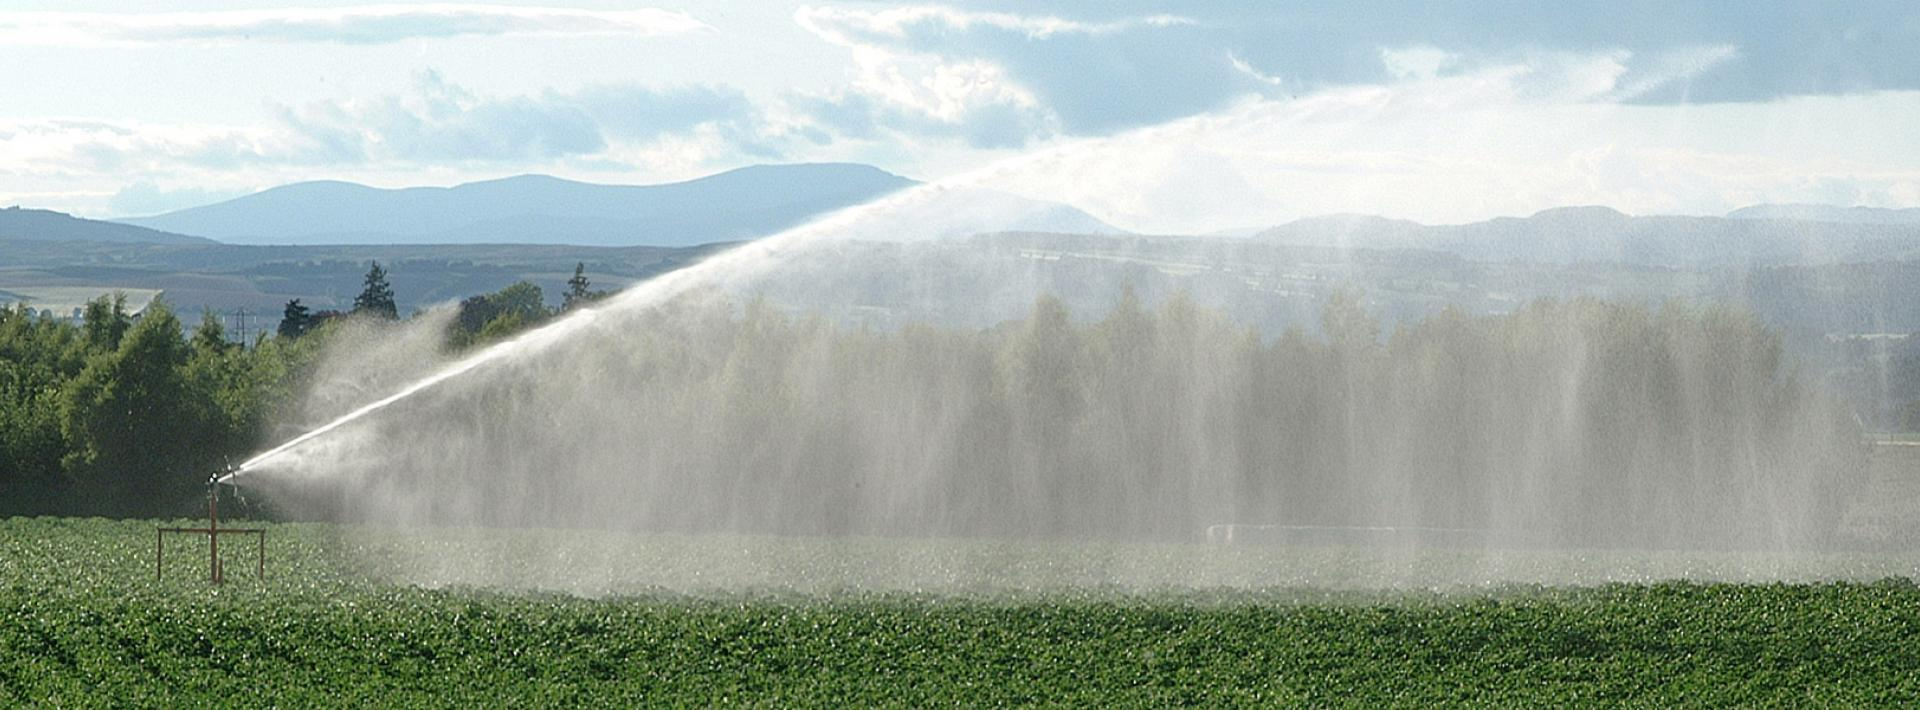 Image showing water sprayer in action